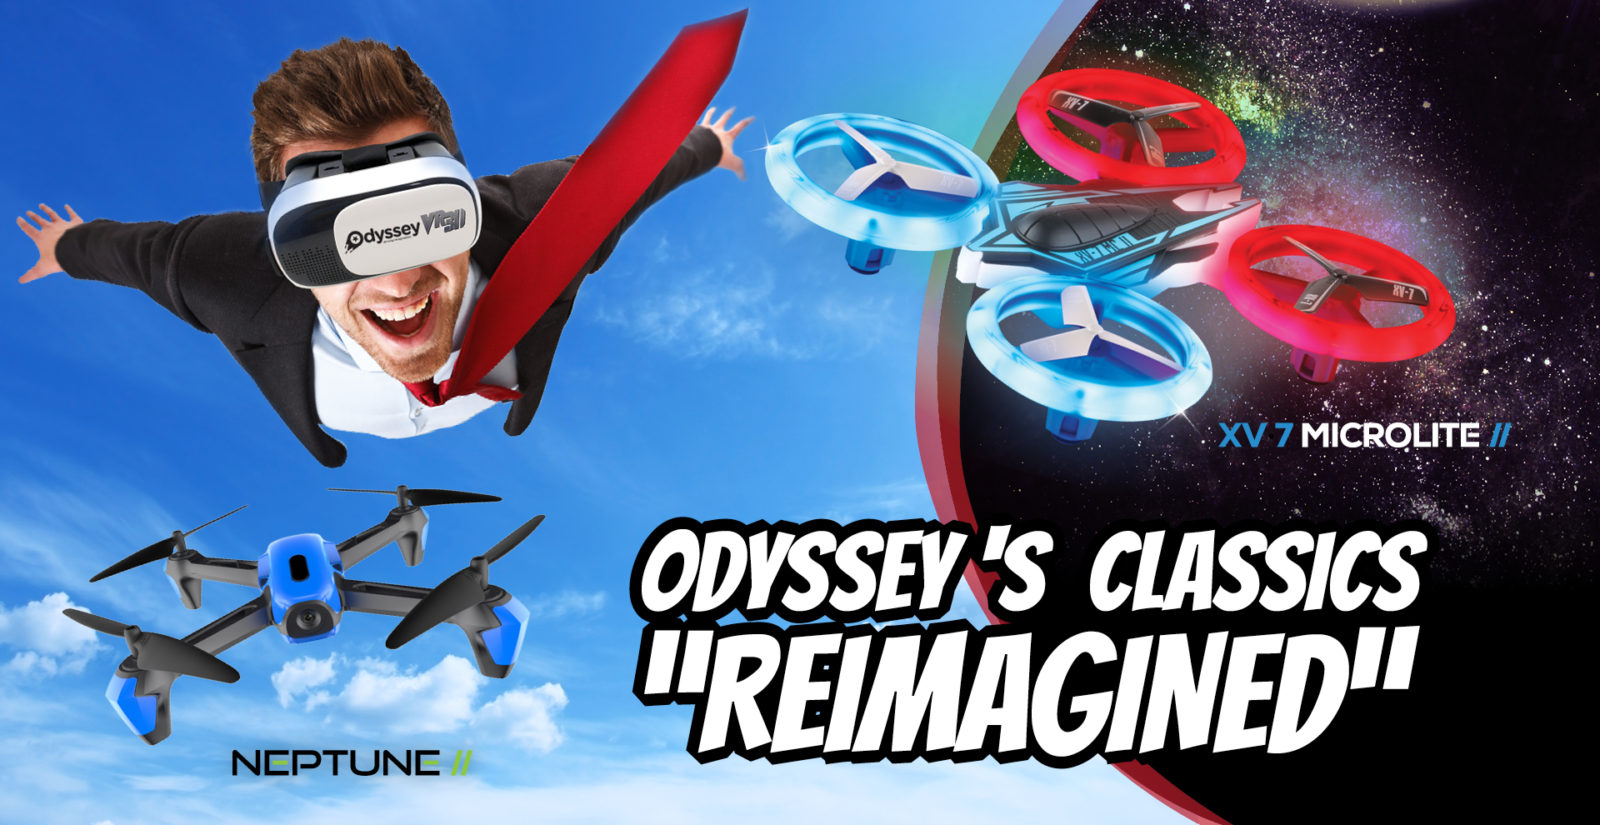 quad drone, camera drone, odyssey toys, LEDs, LED lights, superb right LEDs, drone, fun drone, toy drone